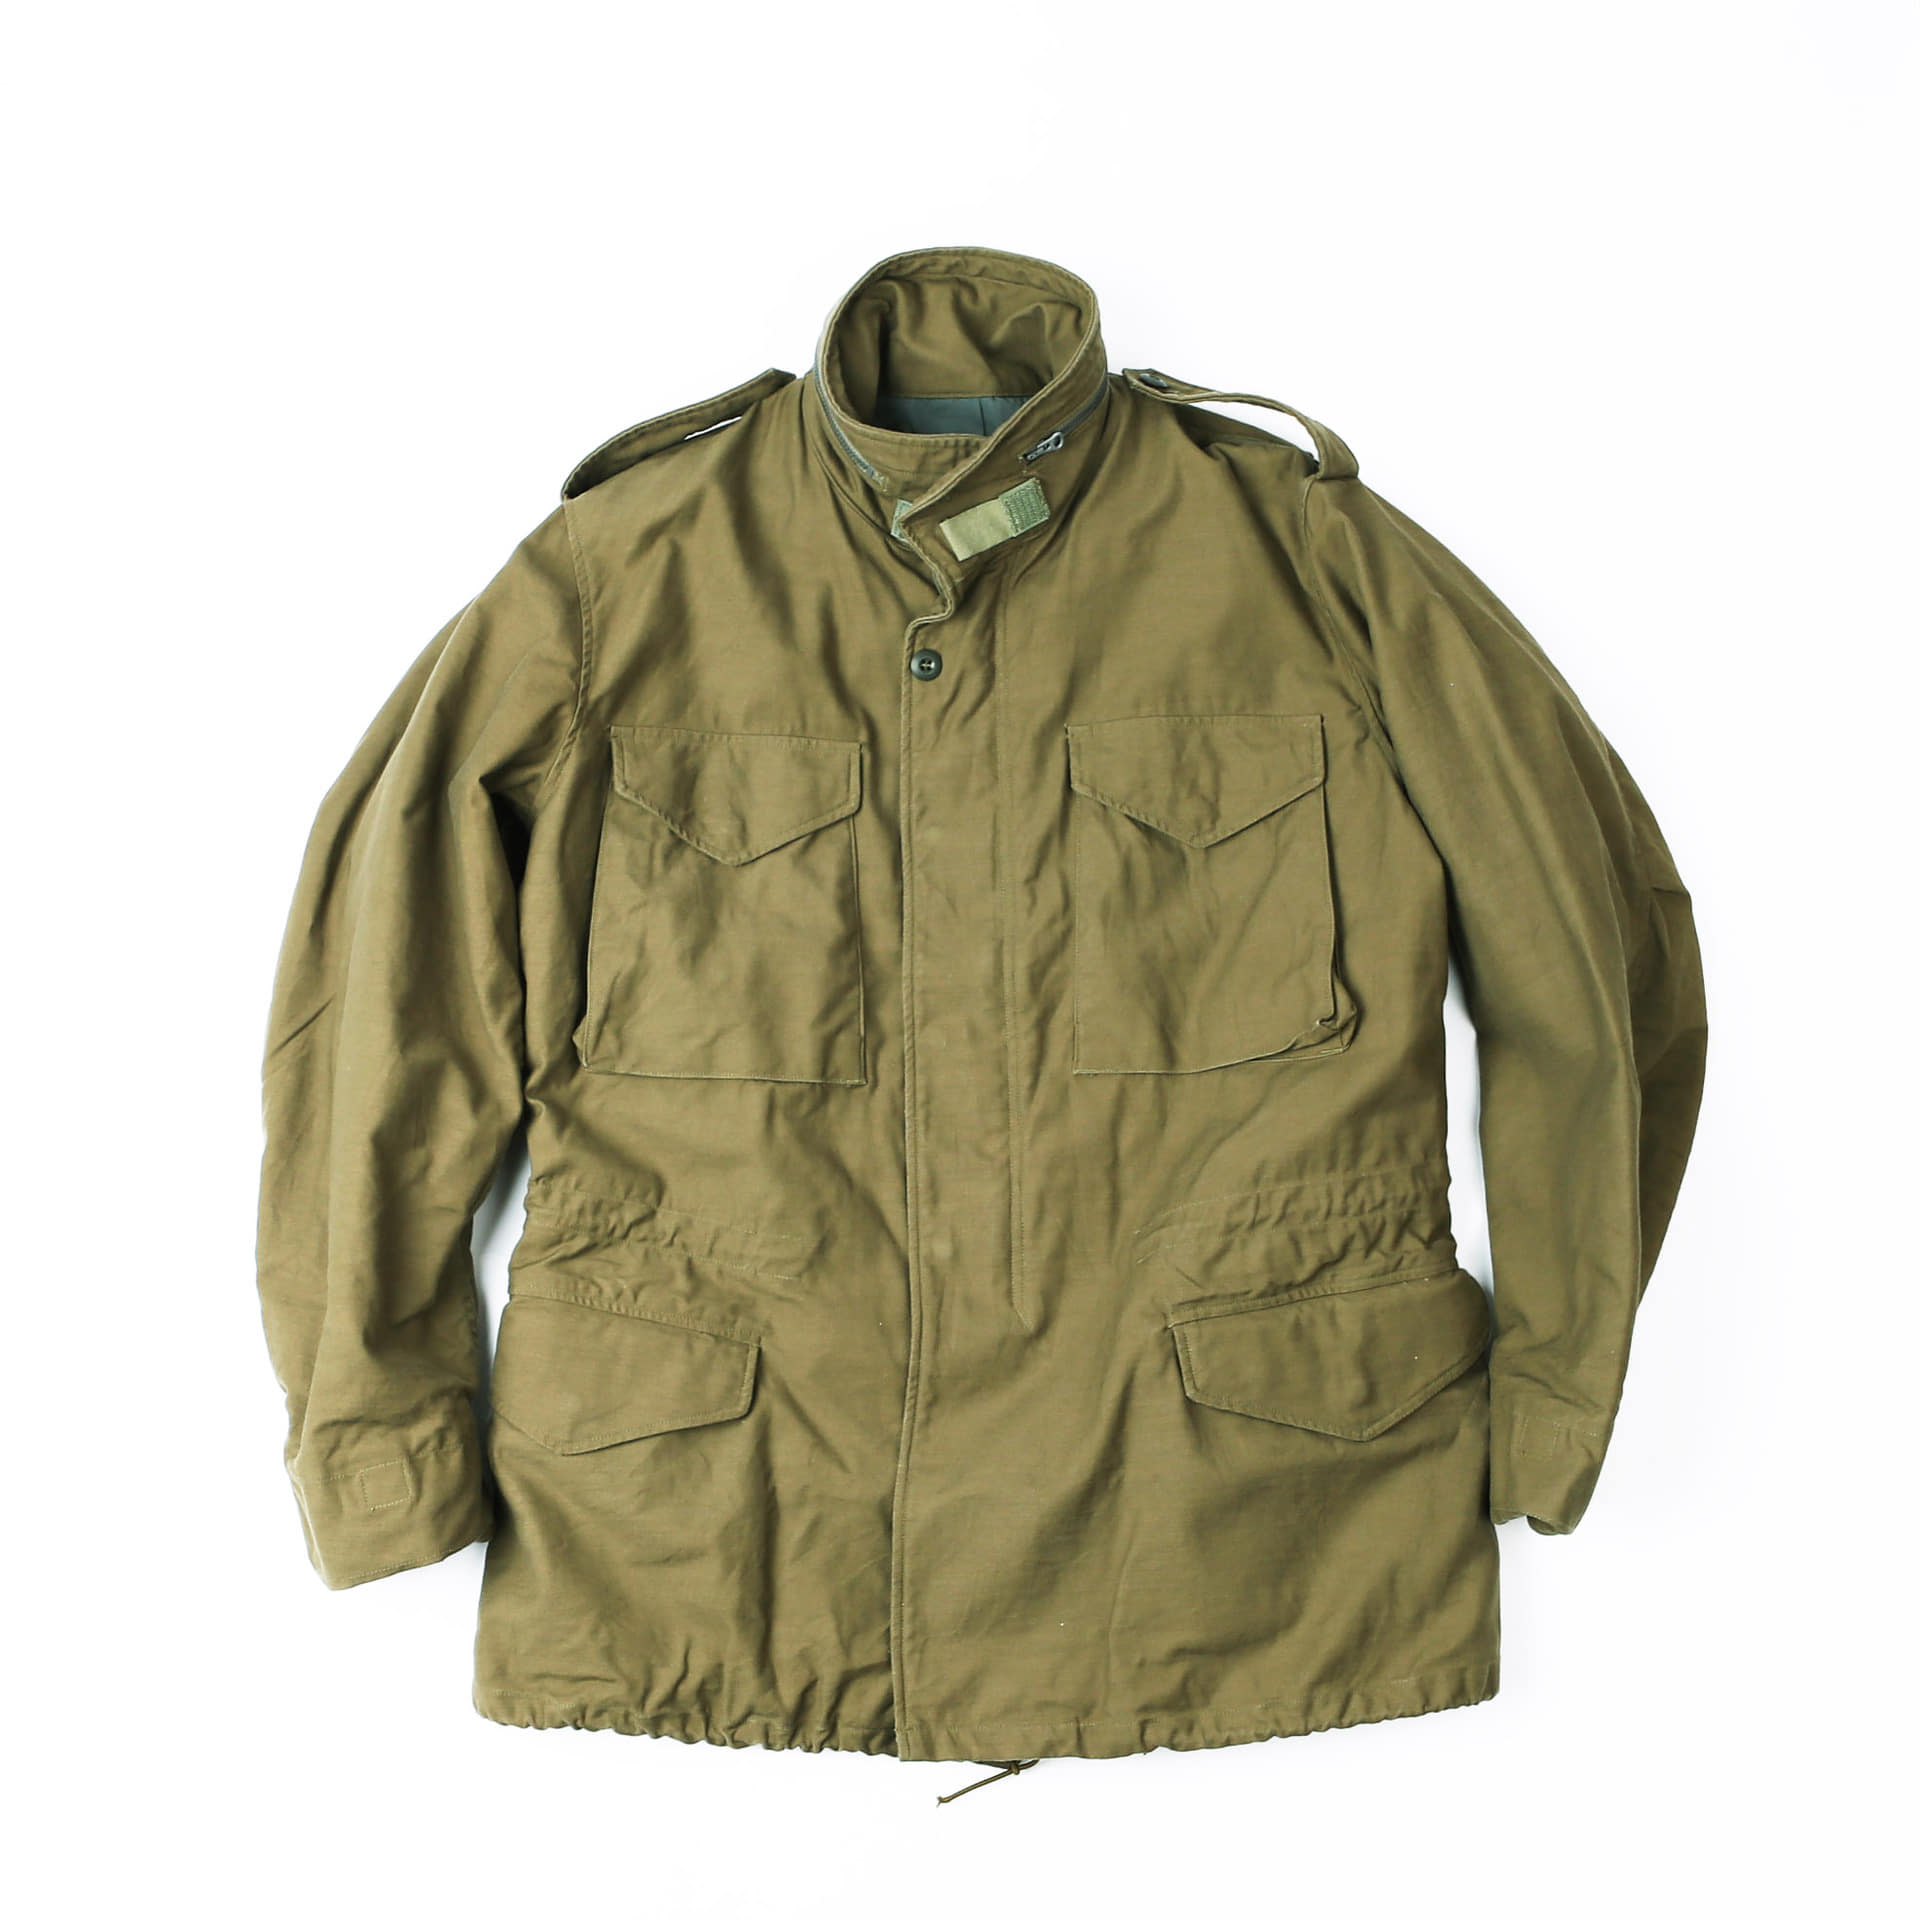 TYPE M-65 FIELD JACKET (Olive Drab)